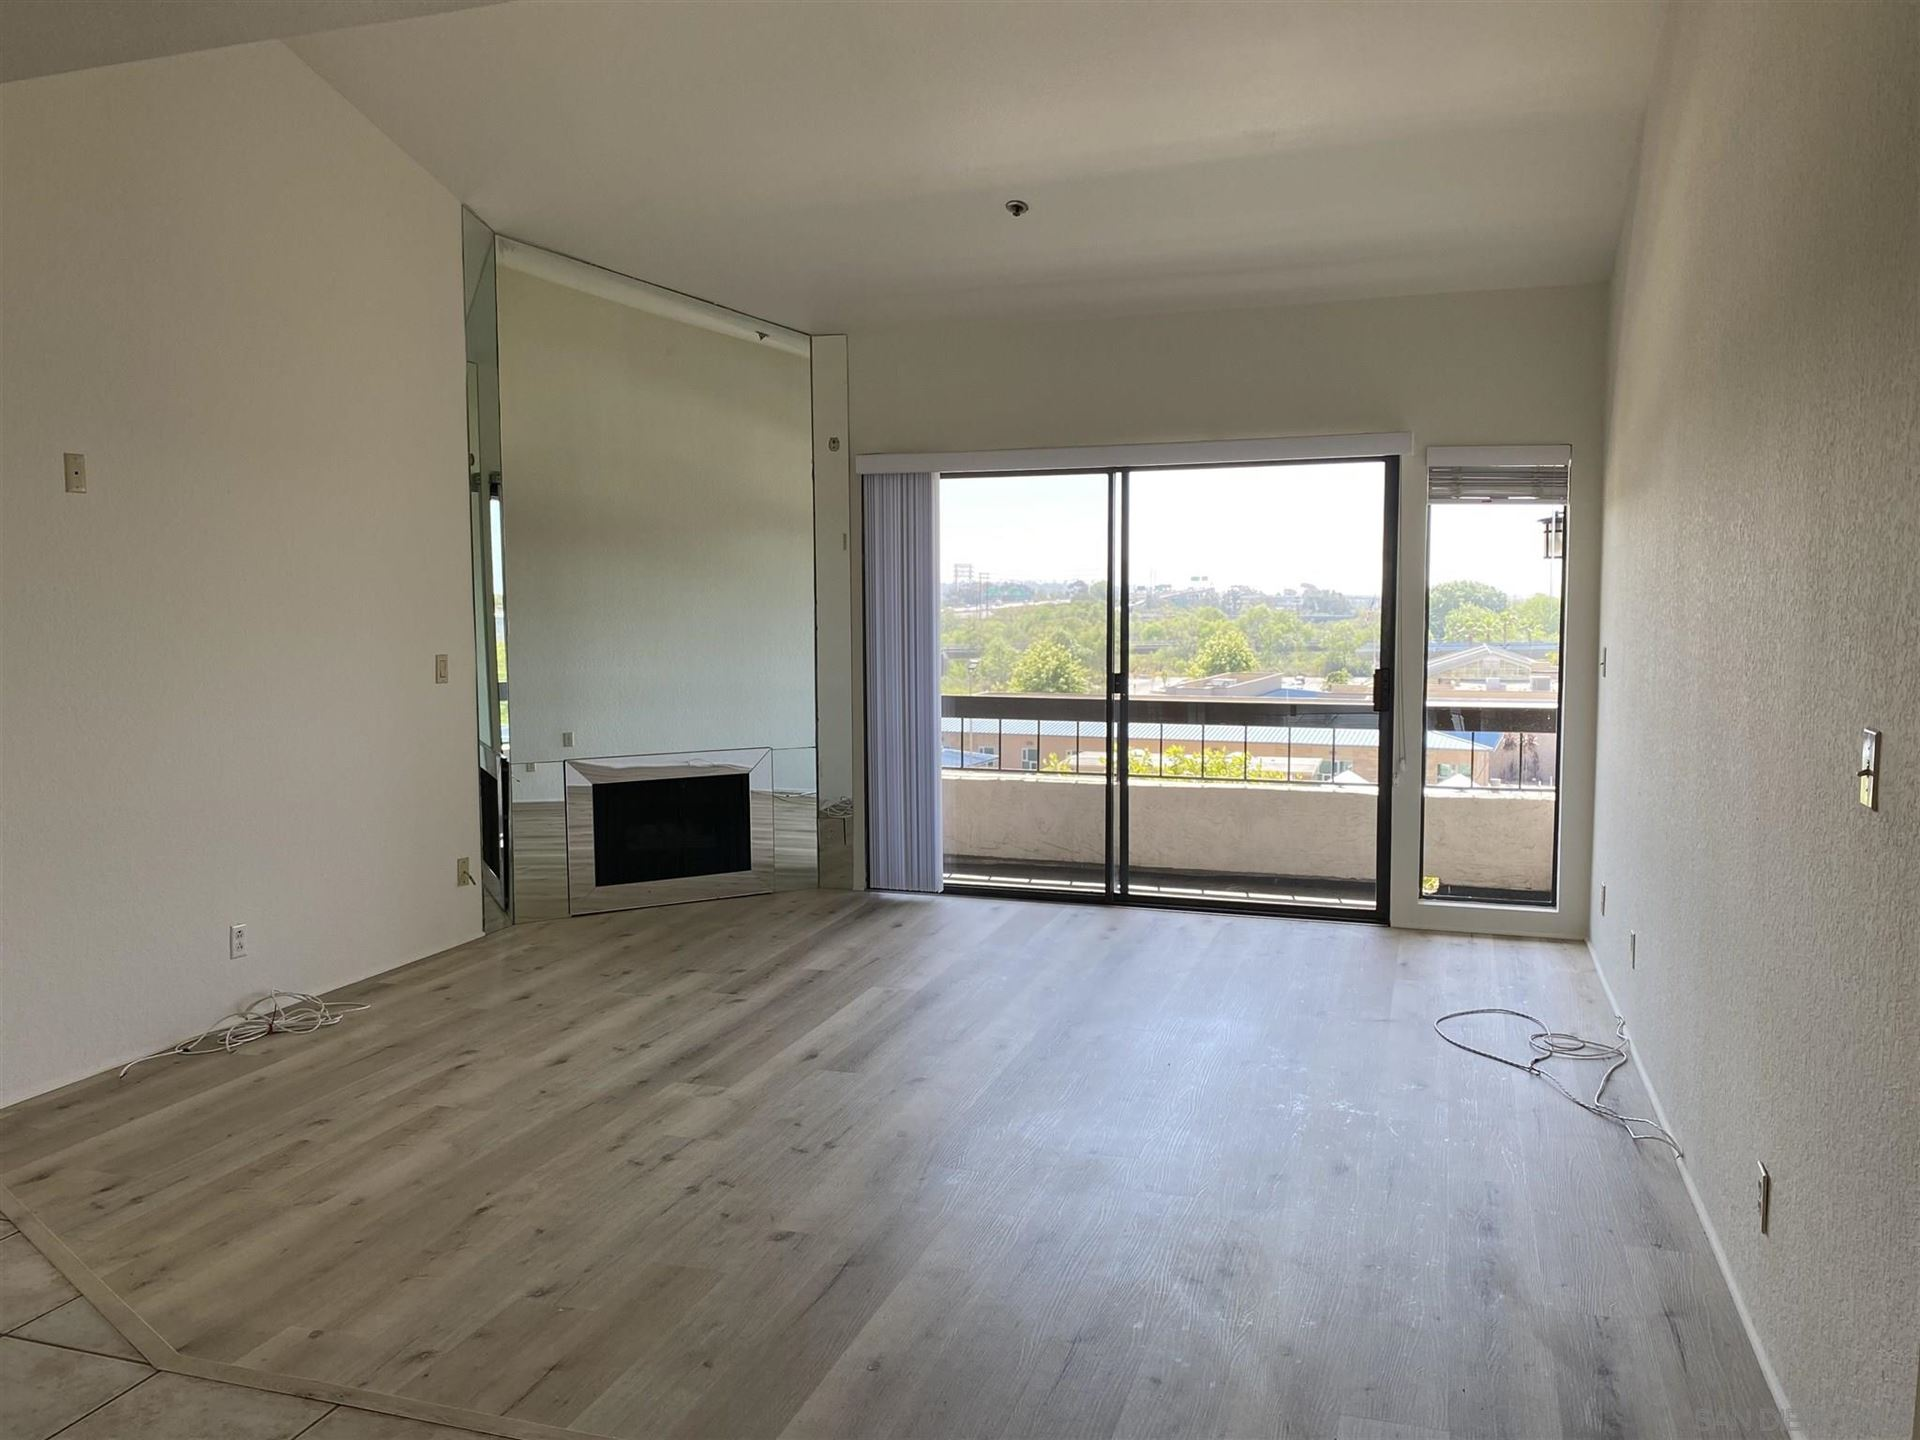 Photo for 5605 Friars Rd #330, San Diego, CA 92110 (MLS # 210011813)